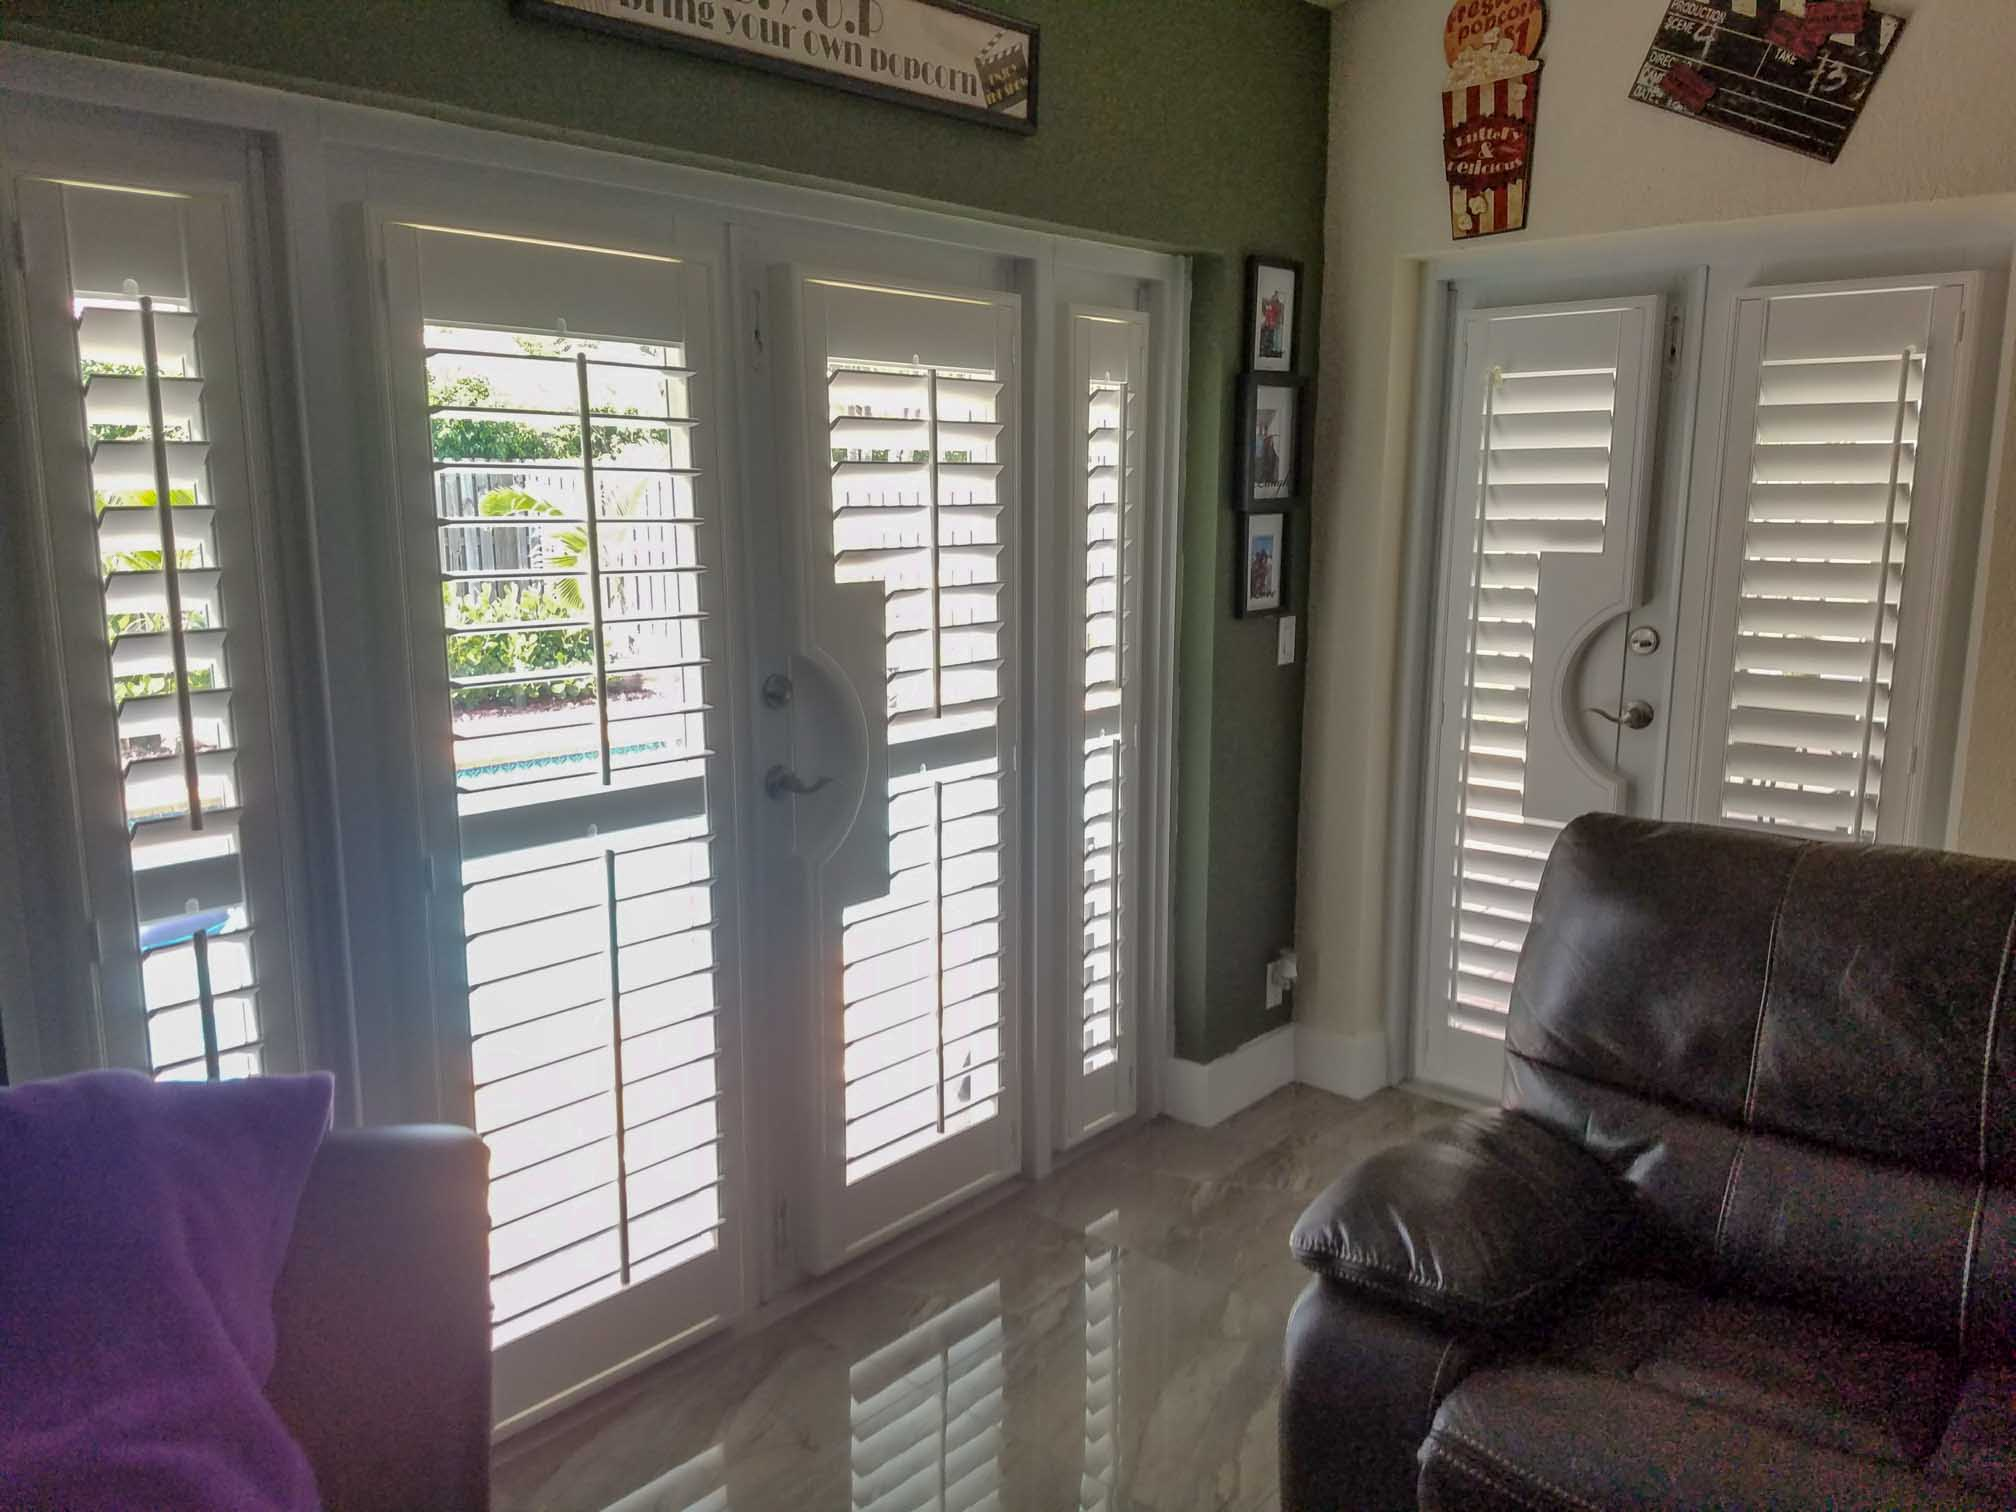 plantation shutters gallery PLANTATION SHUTTERS GALLERY 20171013 140846